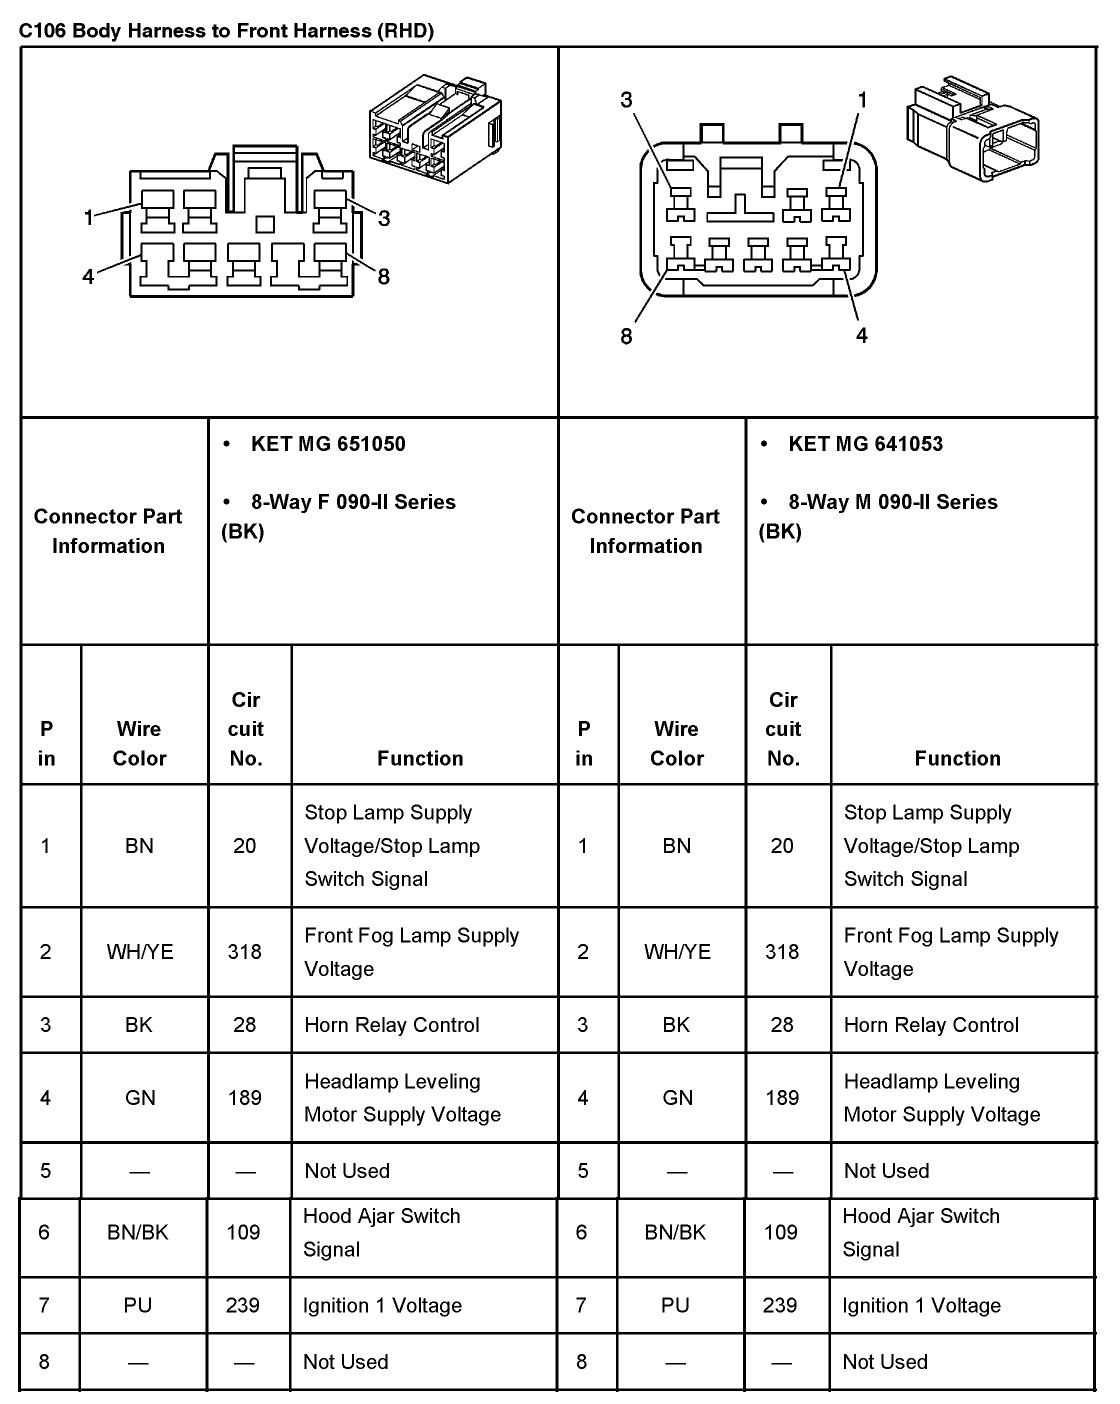 hight resolution of 2002 chevy blazer fuse box diagram wiring diagram centre 2004 chevy blazer fuse box location 2004 chevy trailblazer fuse diagram